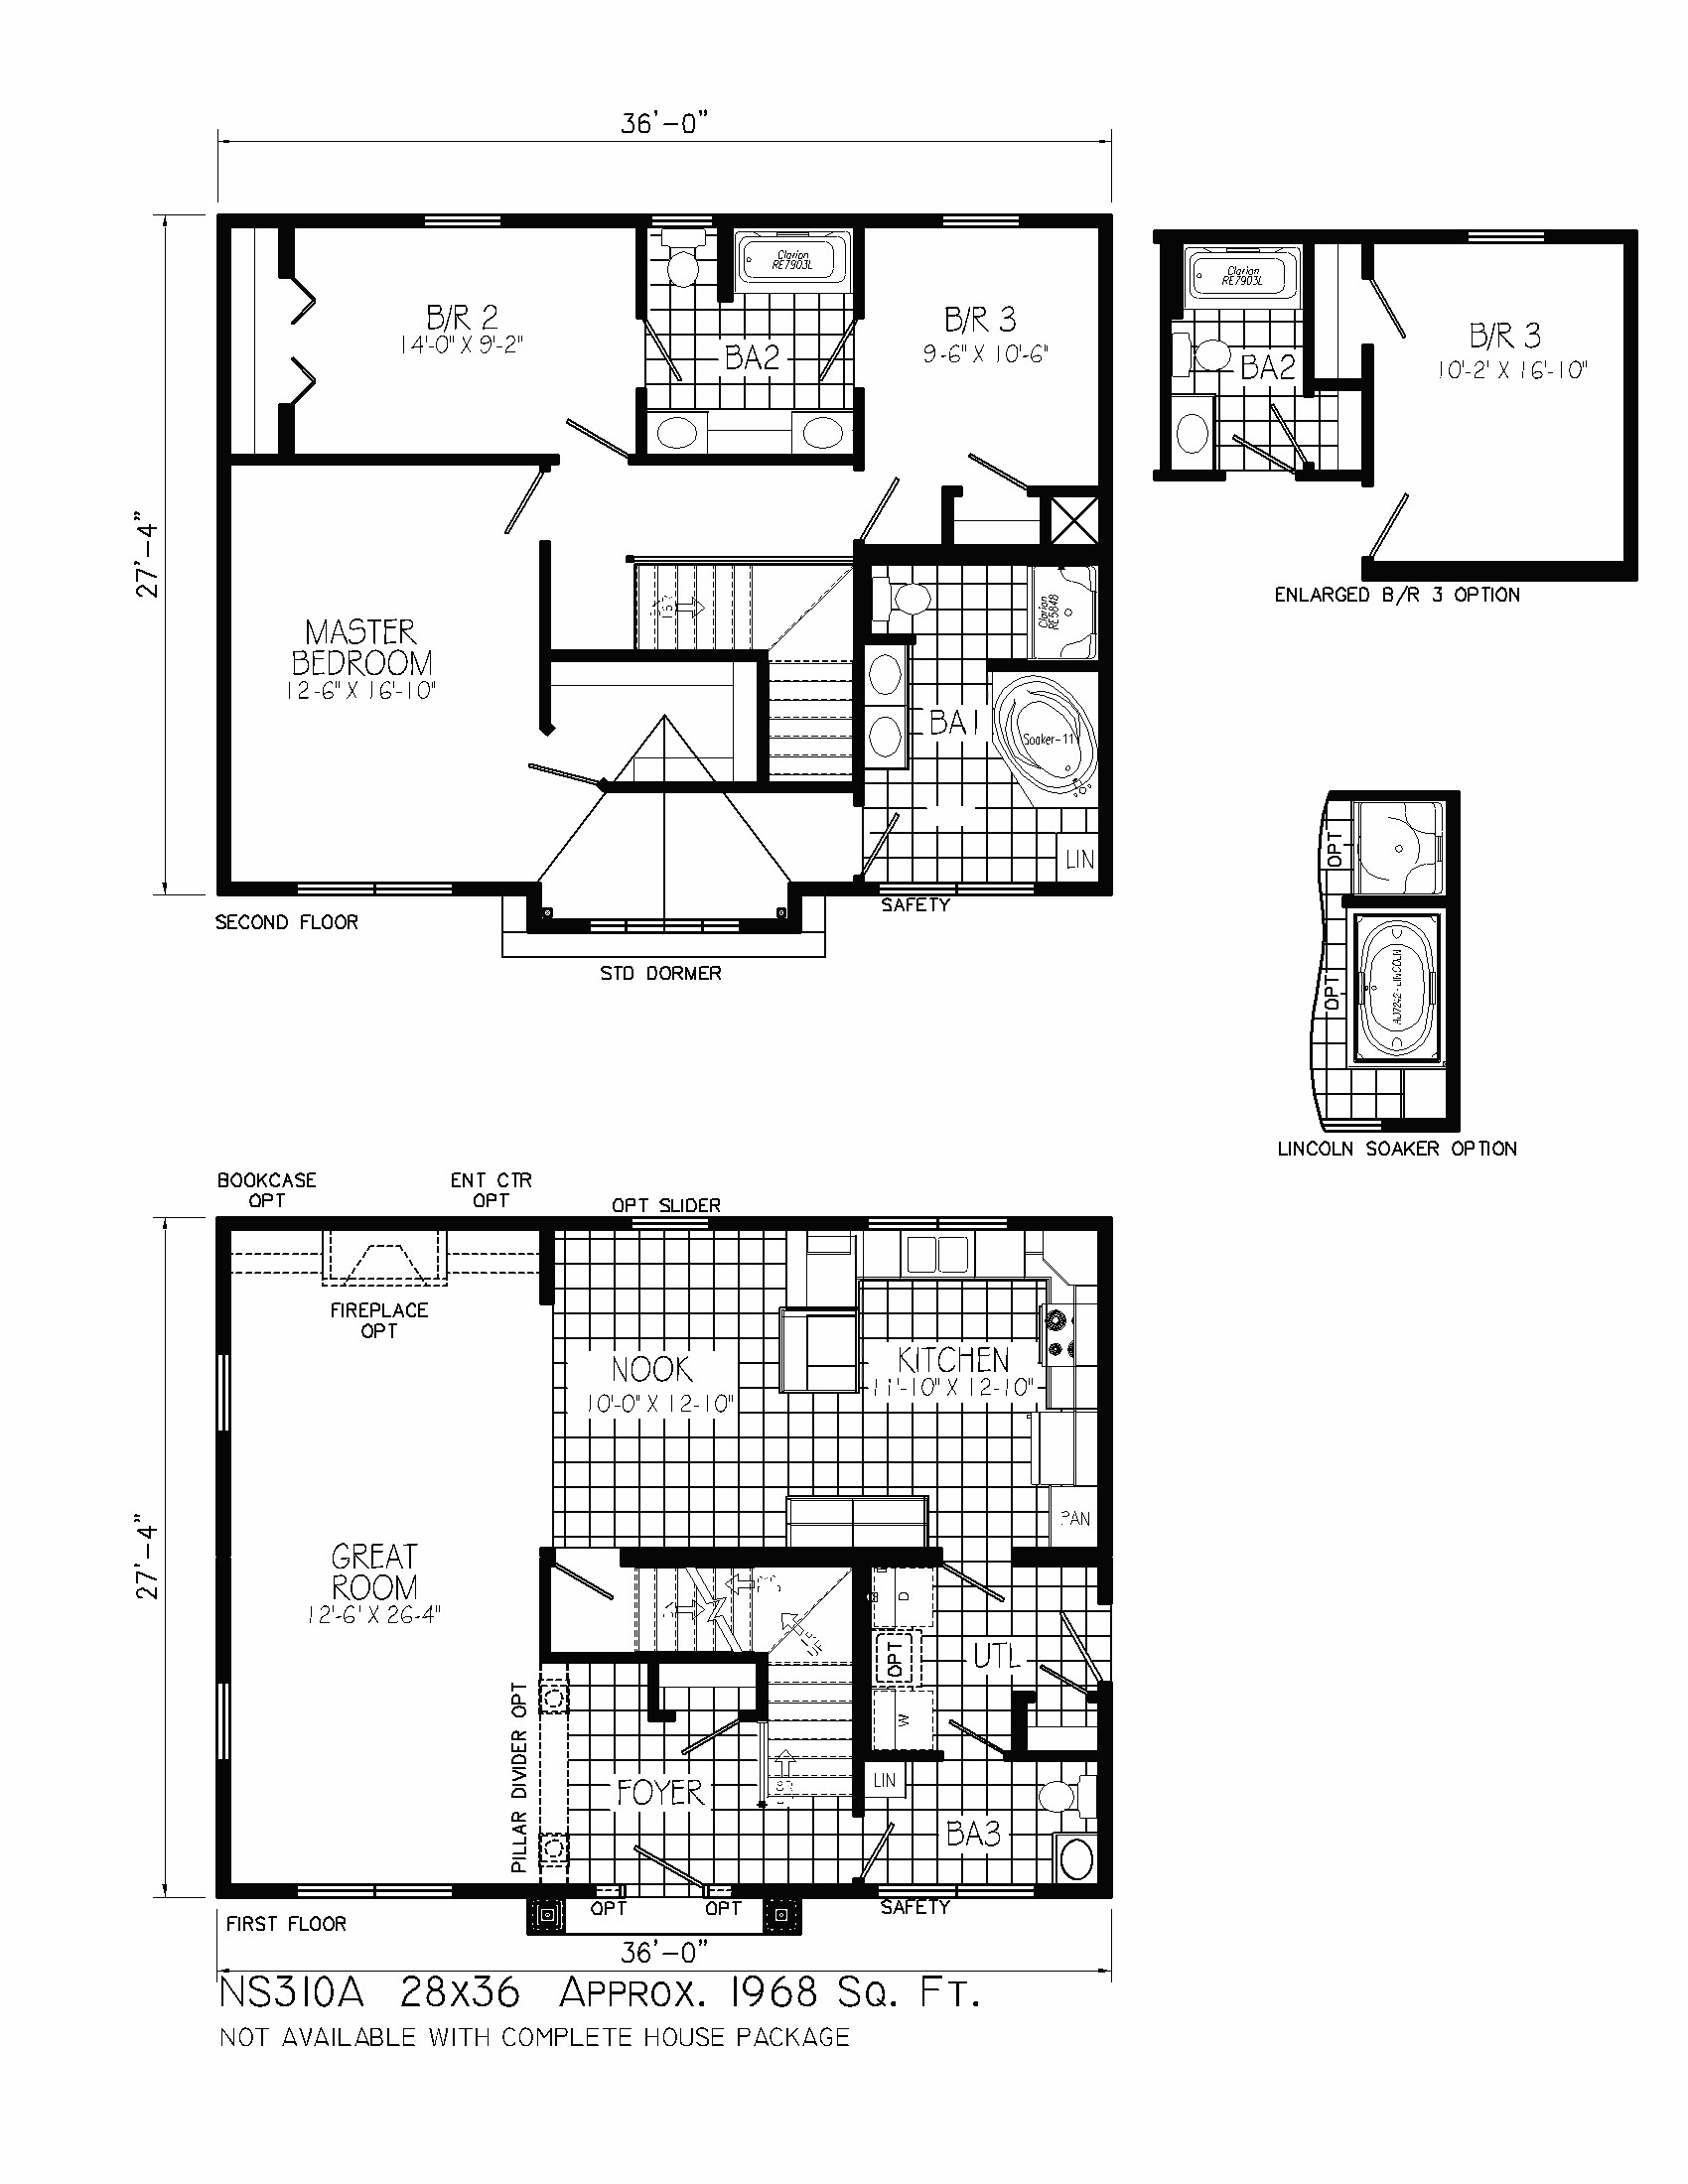 luxury house floor plans awesome 59 luxury 1 story floor plans house plans design 2018 house